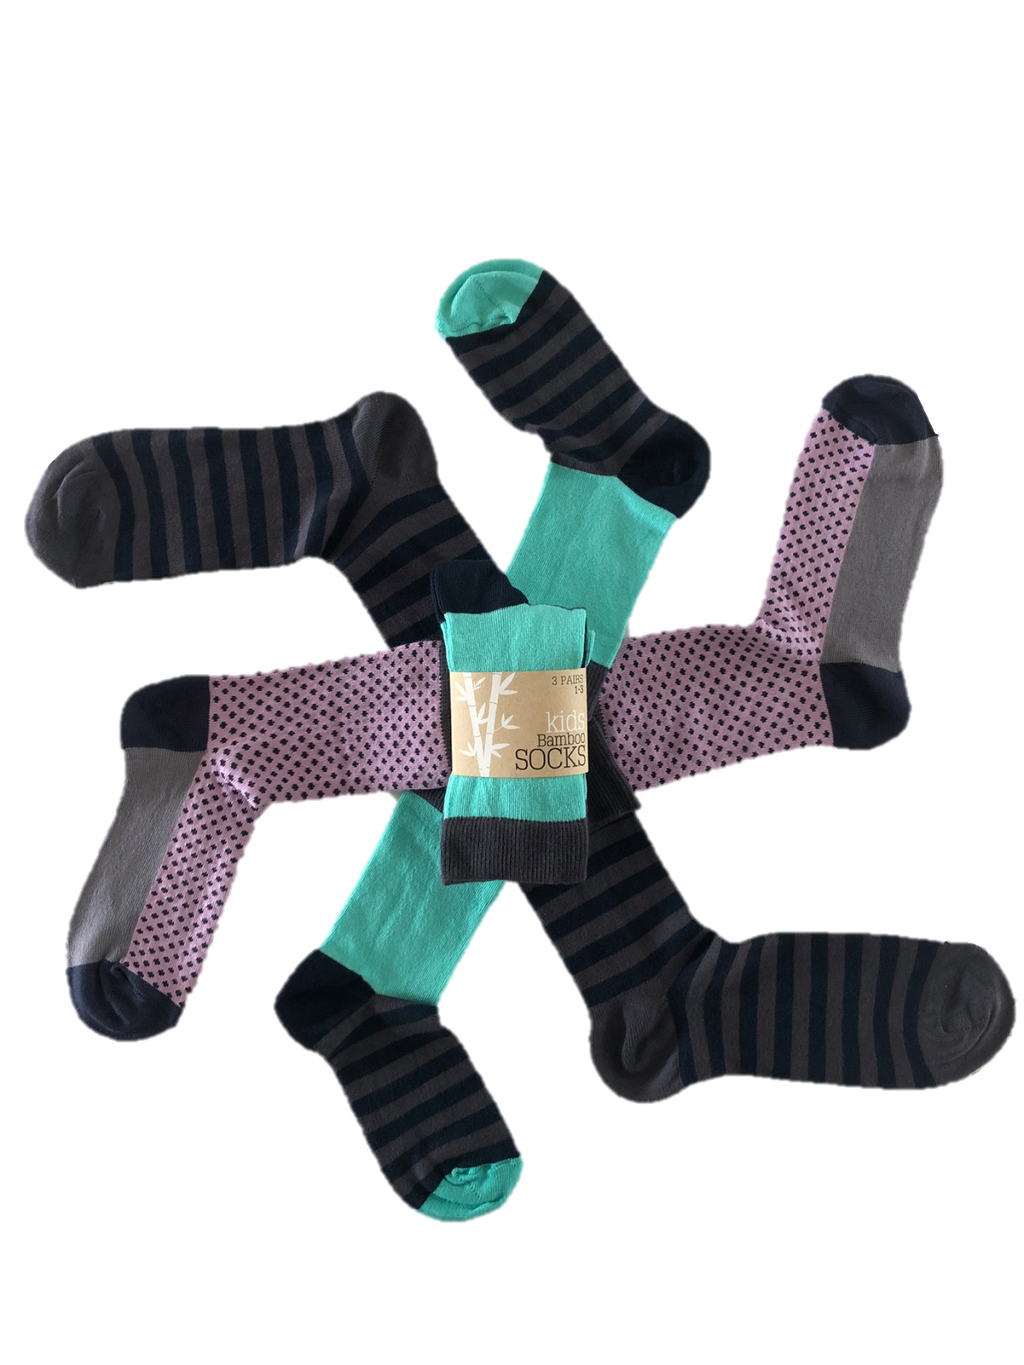 Supersoft bamboo socks tri pack